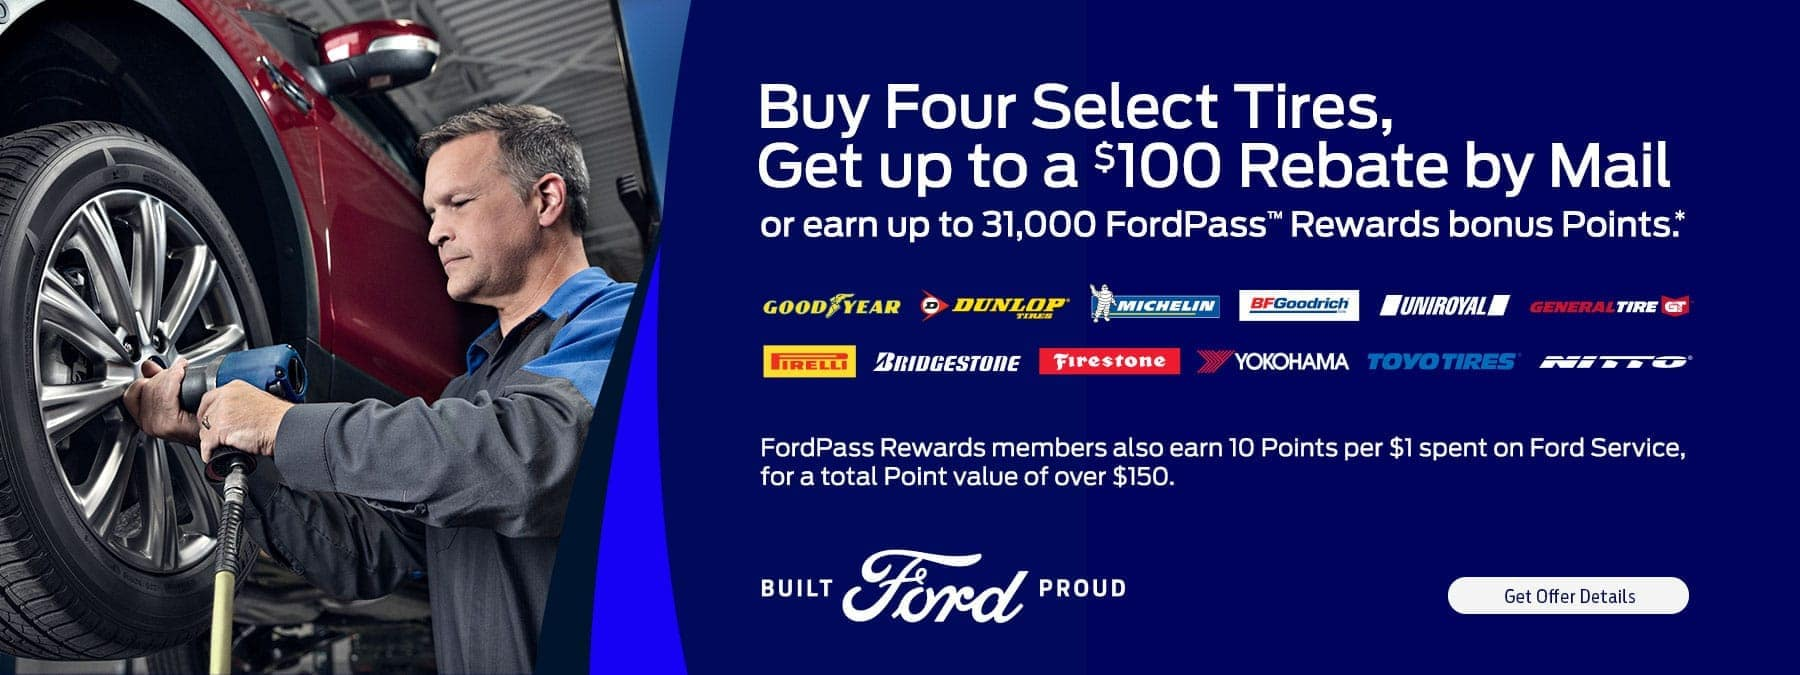 Buy 4 Select Tires for $100 Rebate by Mail